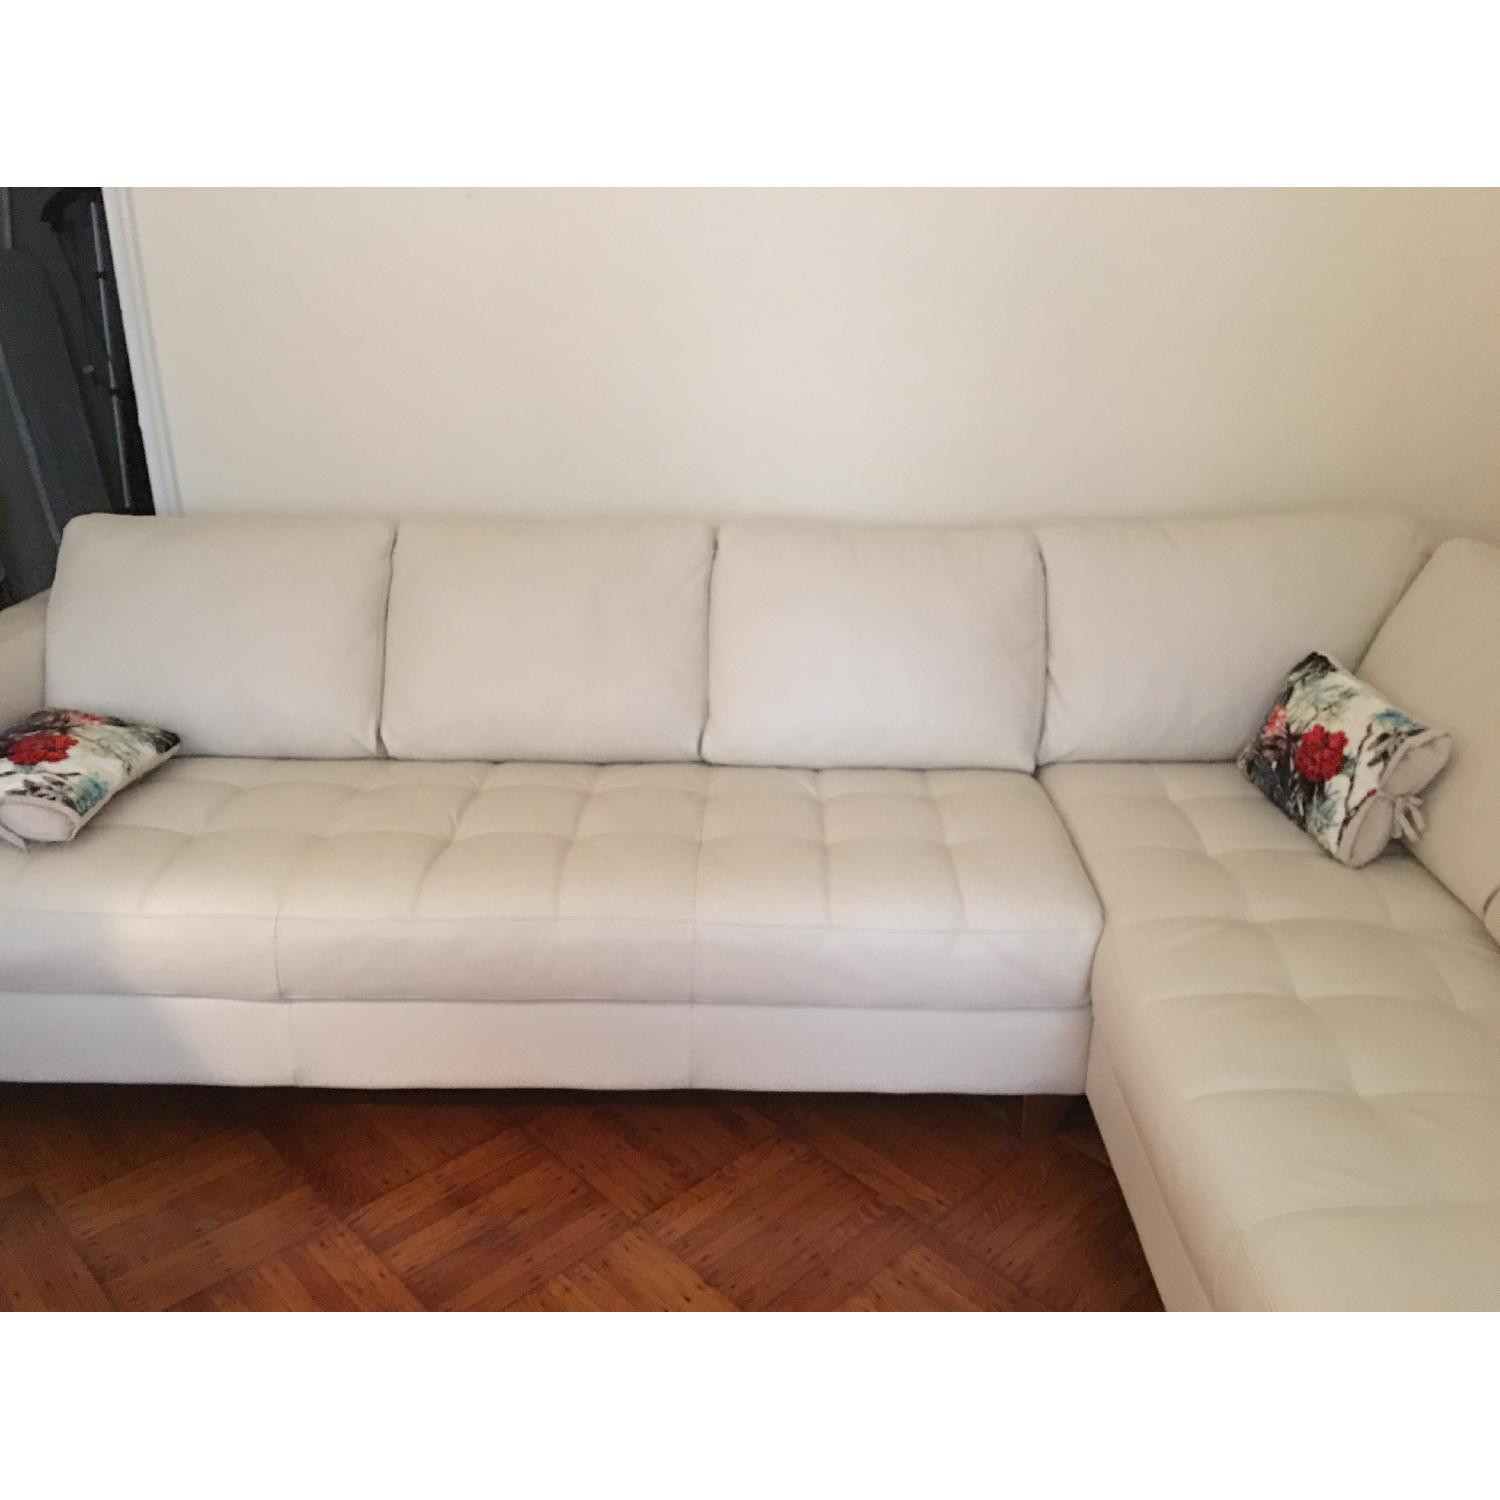 Macy's Italian Quilted Leather Sectional Sofa - image-4